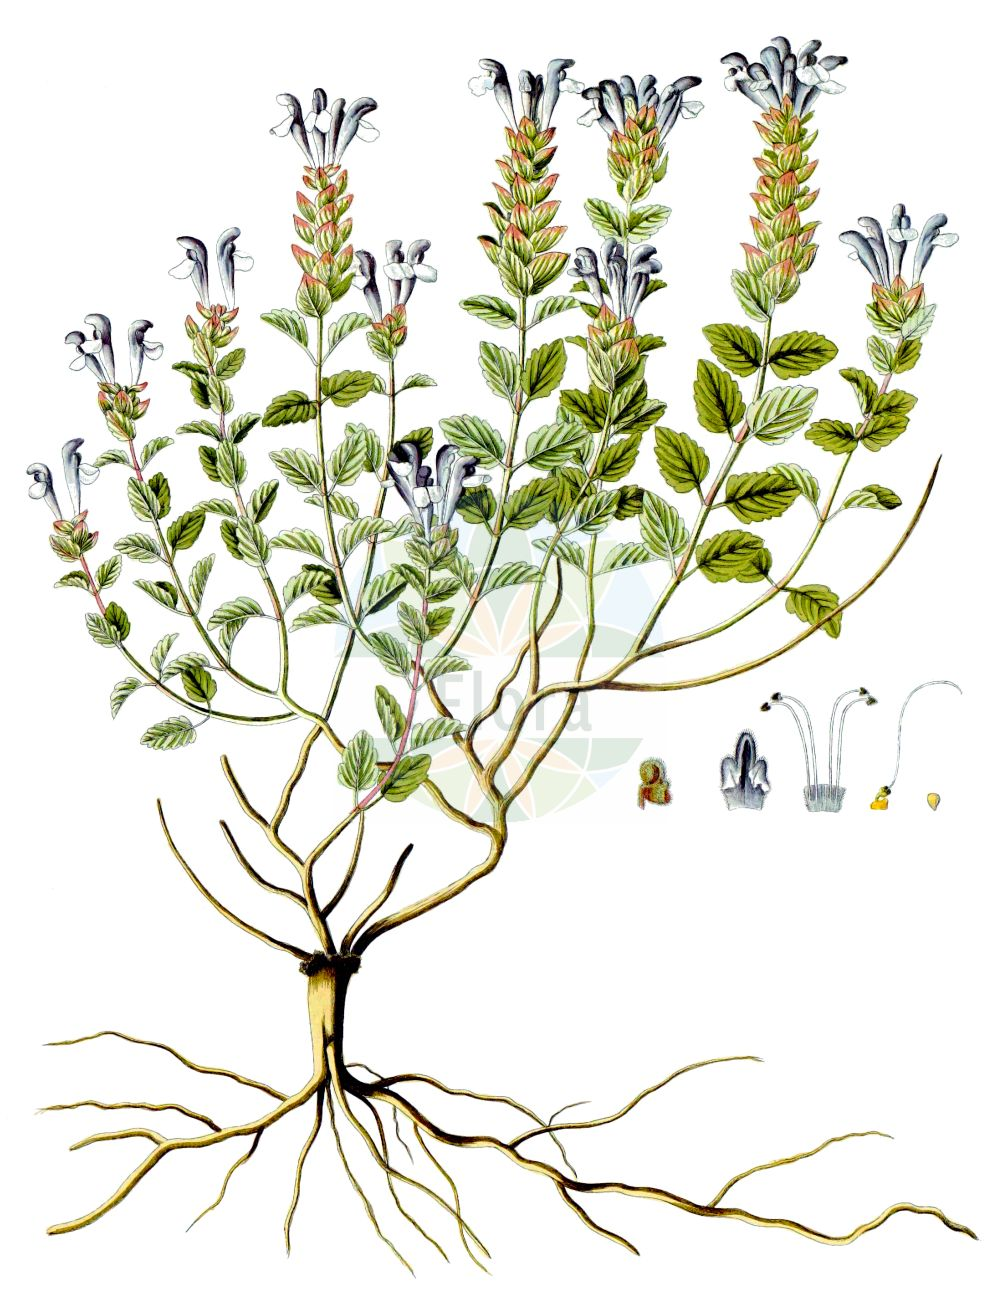 Historische Abbildung von Scutellaria alpina. Das Bild zeigt Blatt, Bluete, Frucht und Same. ---- Historical Drawing of Scutellaria alpina.The image is showing leaf, flower, fruit and seed.(Scutellaria alpina,Cassida alpina,Scutellaria alpina,Scutellaria compressa,Scutellaria jabalambrensis,Scutellaria lupulina,Scutellaria variegata,Scutellaria viscida,Scutellaria,Helmkraut,Skullcap,Lamiaceae,Lippenbluetengewaechse,Lippenbluetler,Nettle family,Blatt,Bluete,Frucht,Same,leaf,flower,fruit,seed,Waldstein-Wartenberg & Kitaibel (1799-1812))